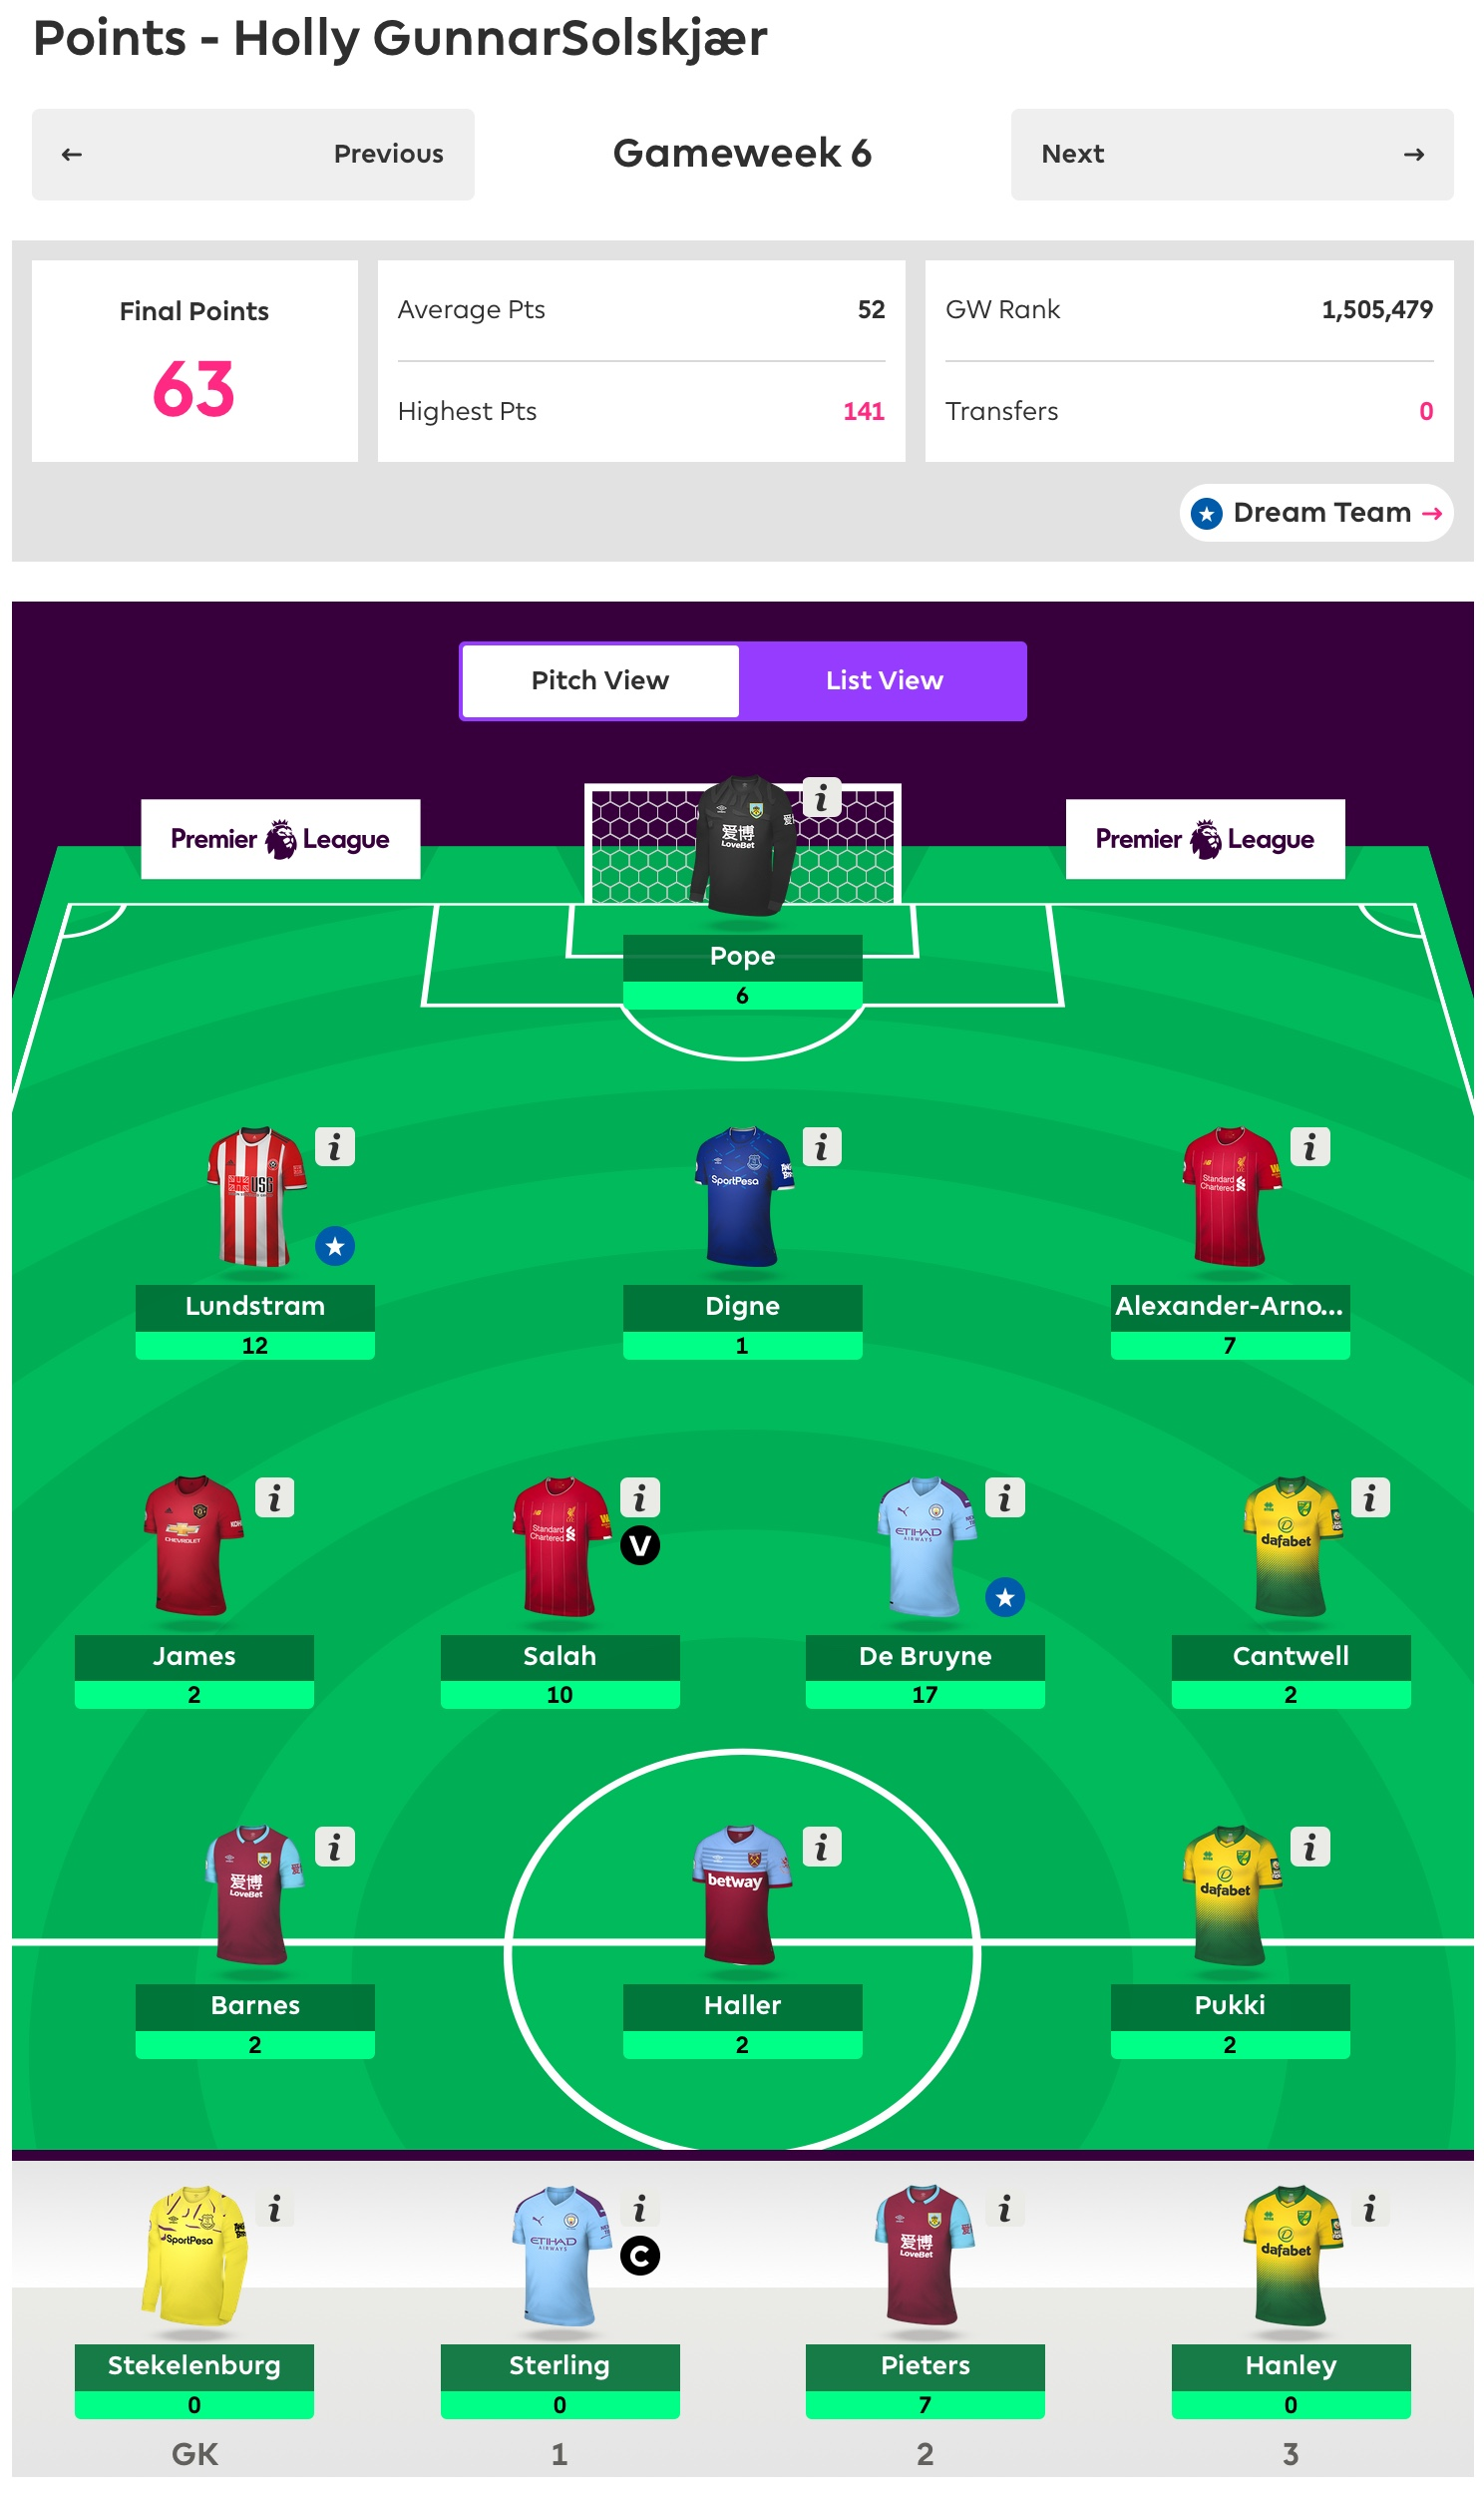 Gameweek 6 Review